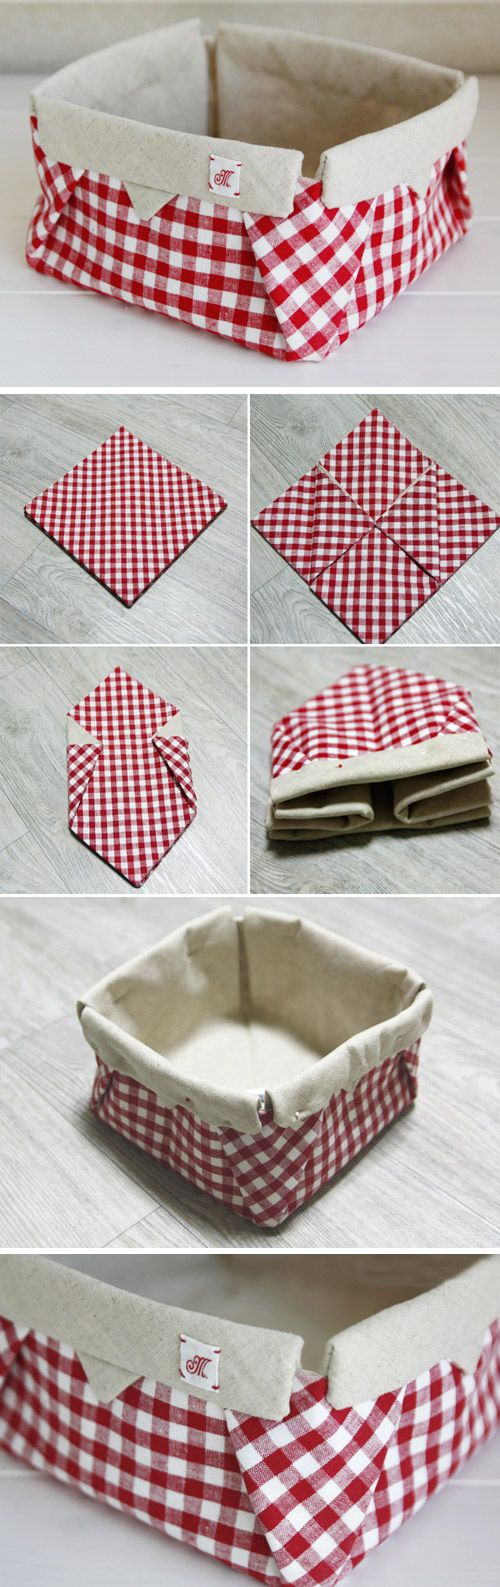 How To Fabric Origami Box Diy Tutorial Fabric Basket Sewing Projects For Beginners Step By Step Sew T Fabric Baskets Fabric Origami Origami Box Tutorial